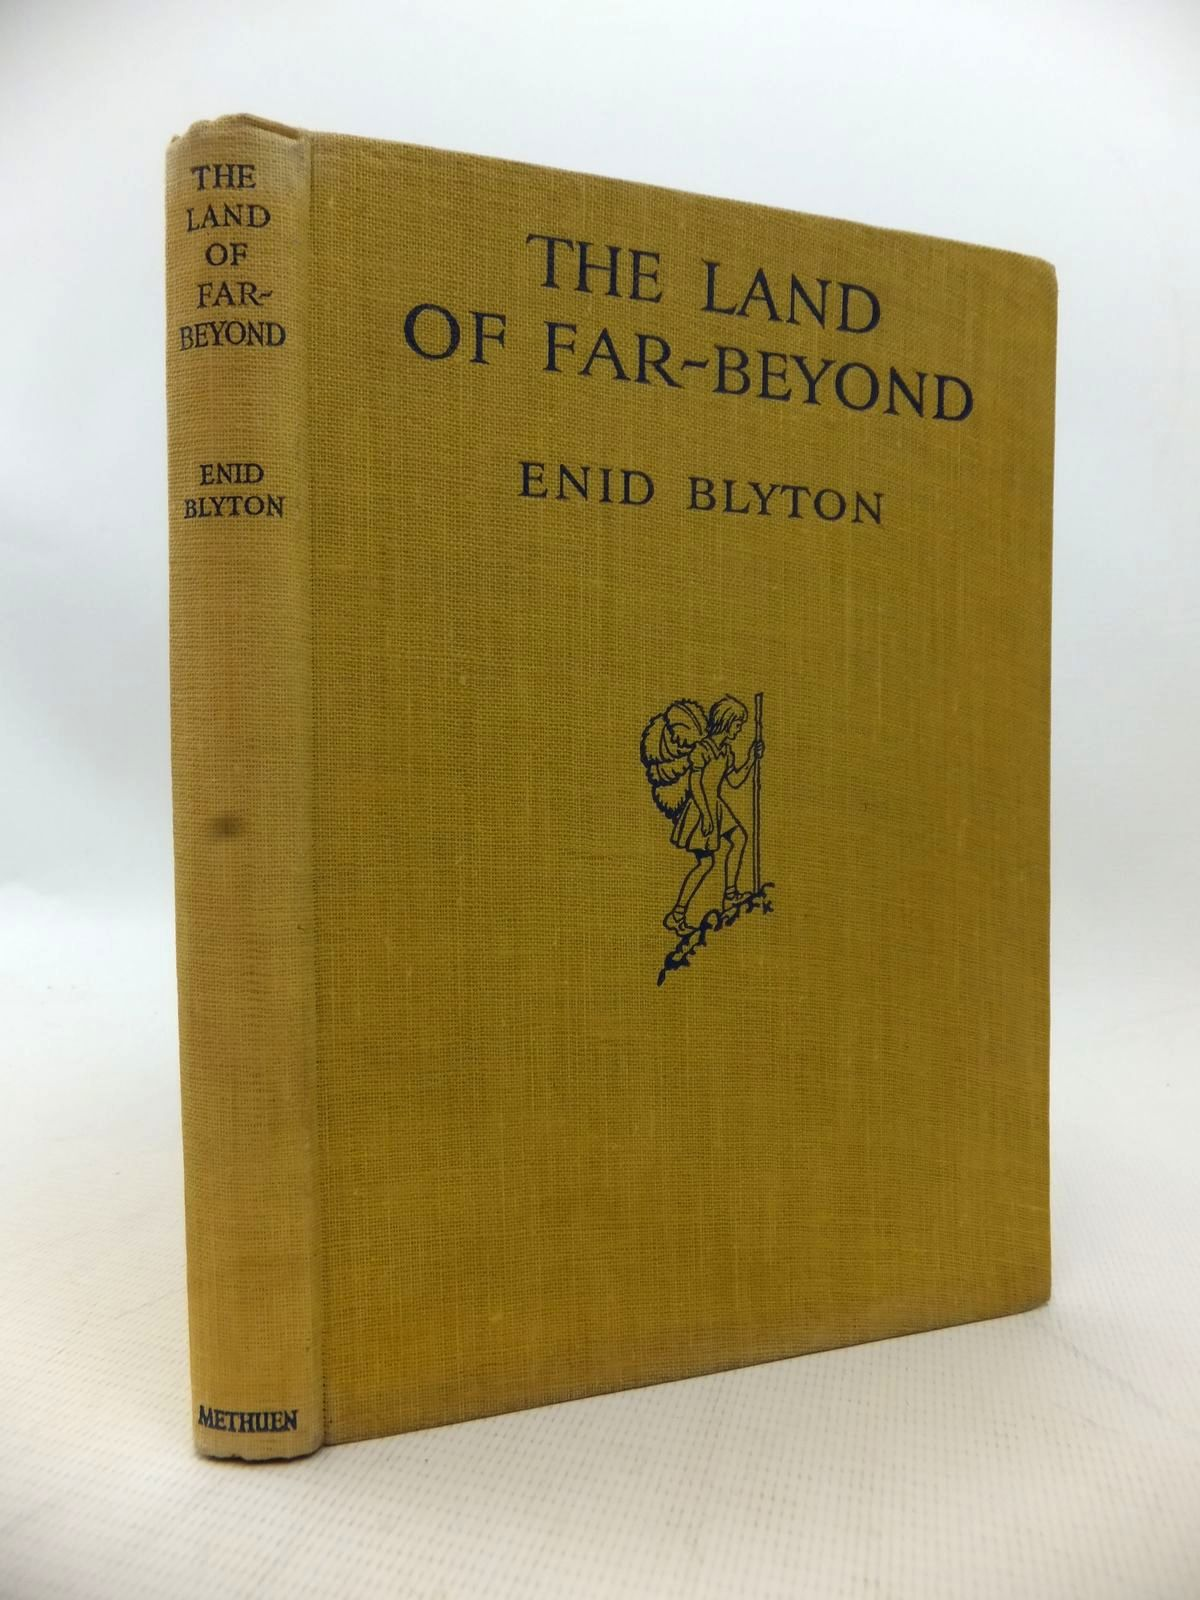 Photo of THE LAND OF FAR BEYOND written by Blyton, Enid illustrated by Knowles, Horace J. published by Methuen & Co. Ltd. (STOCK CODE: 1814140)  for sale by Stella & Rose's Books